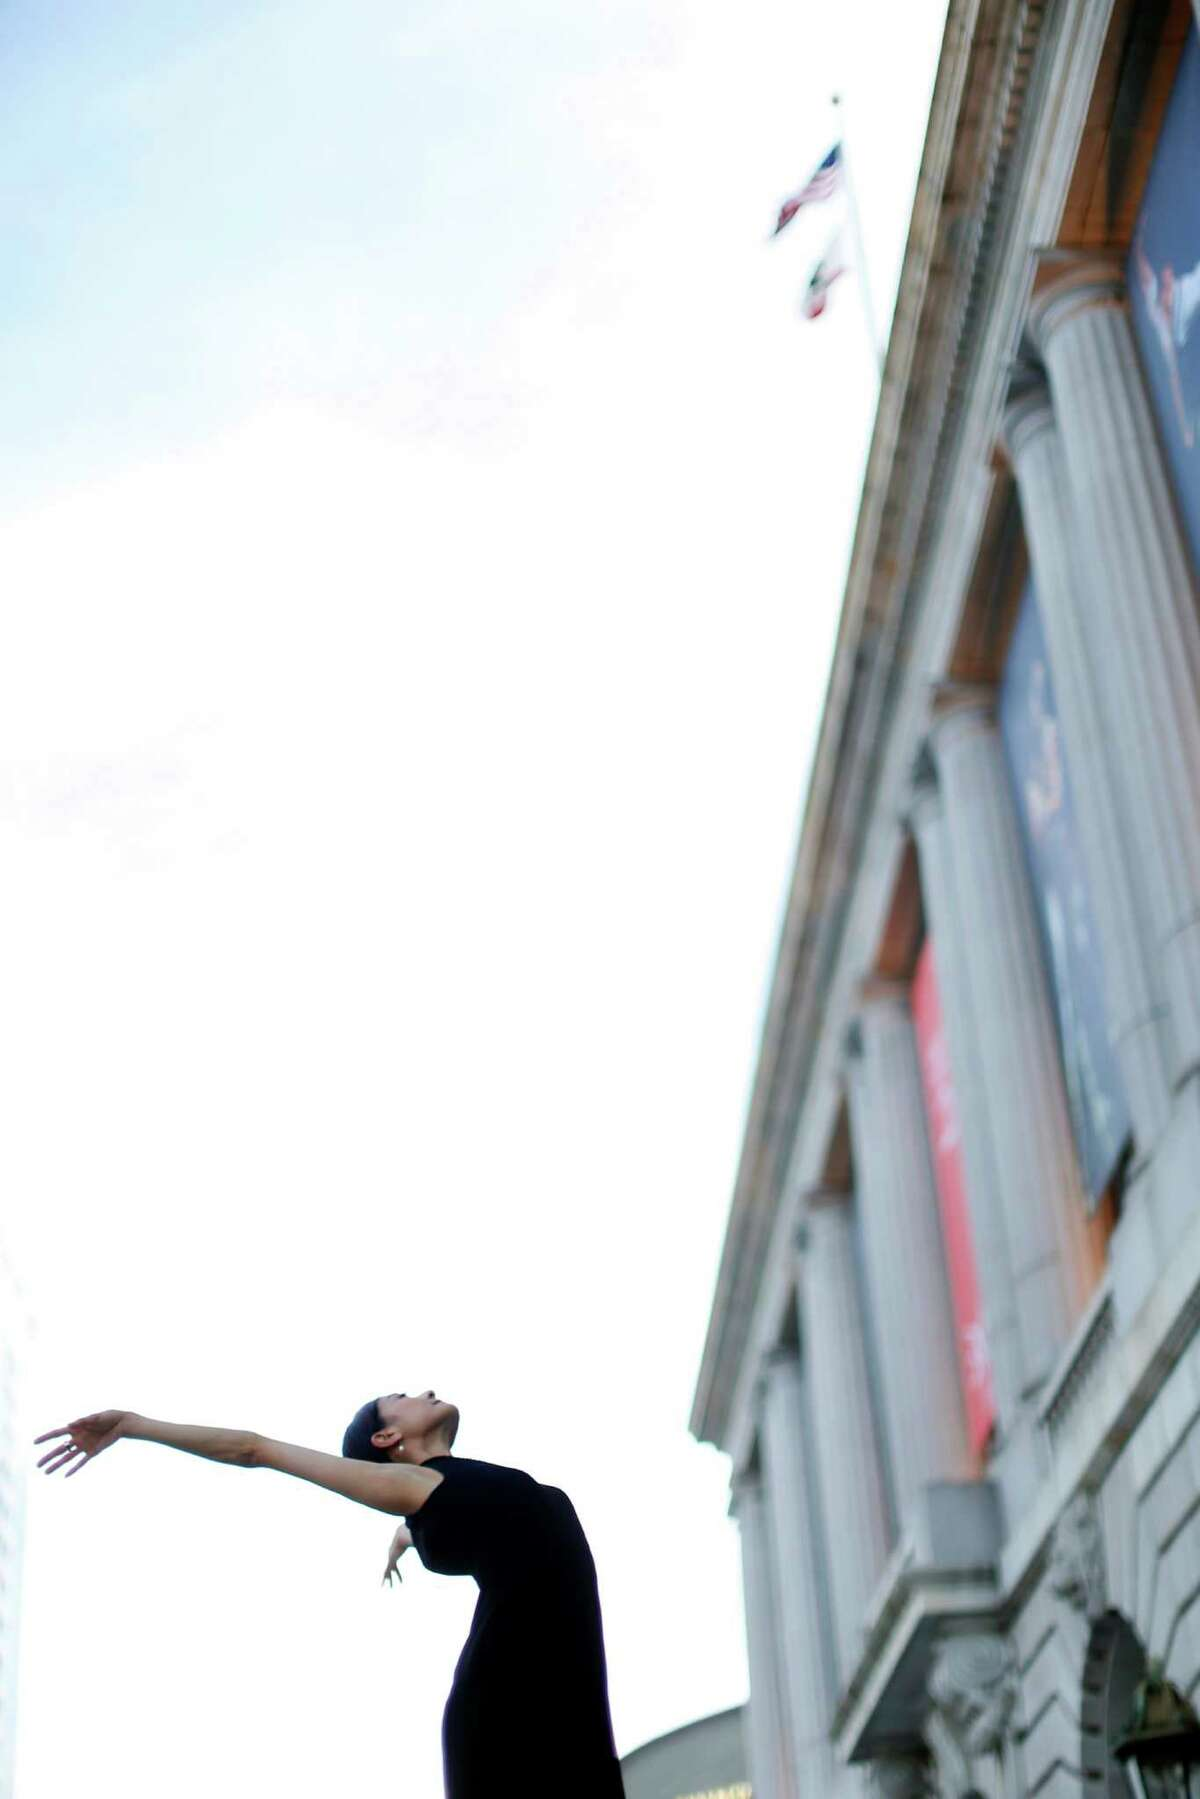 """""""I am happy to still dance a lot,"""" says Yuan Yuan Tan, here outside the Opera House. """"My body is still responsive."""""""